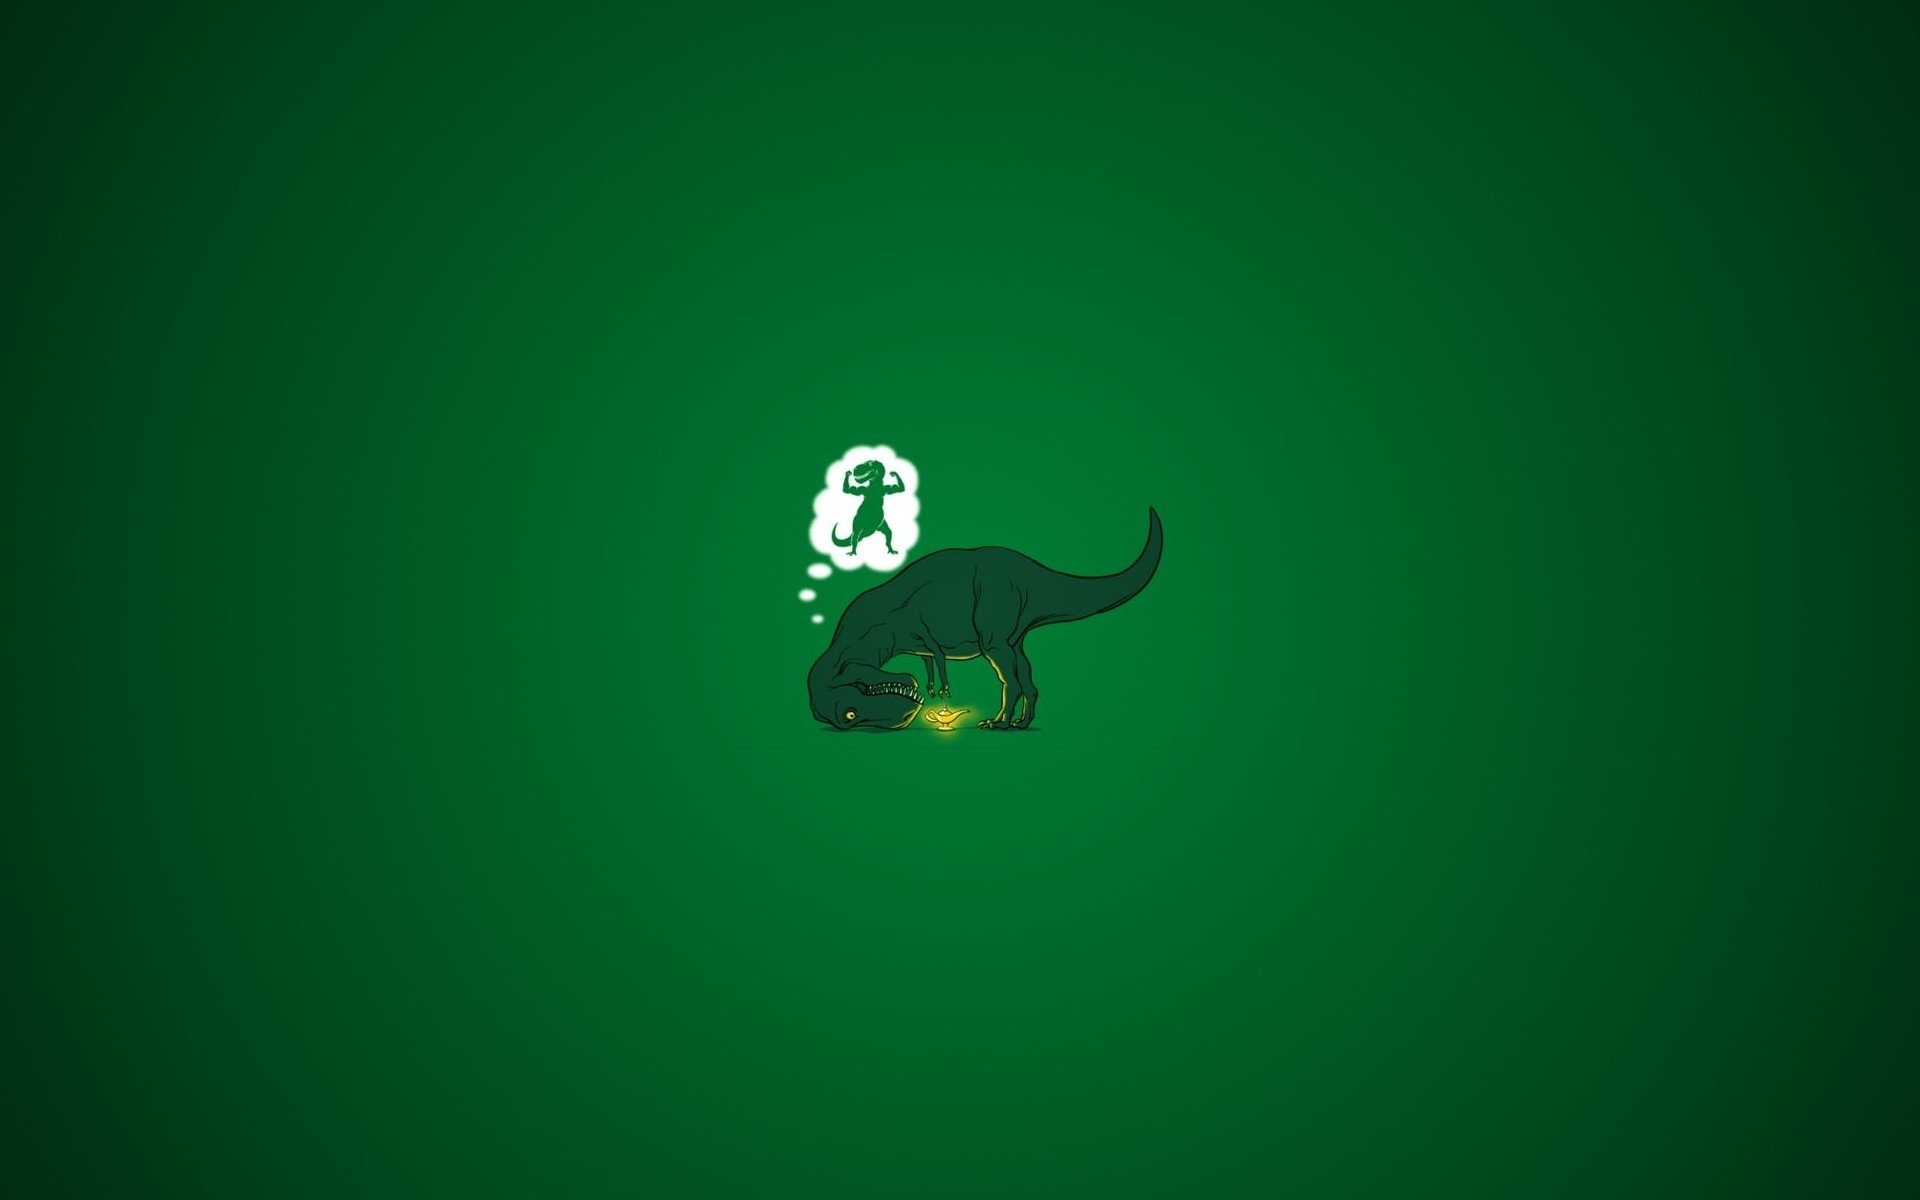 Pretty Full Wallpapers Disney Quotes Green Minimalistic Dinosaurs Funny Simplistic Arms Rex